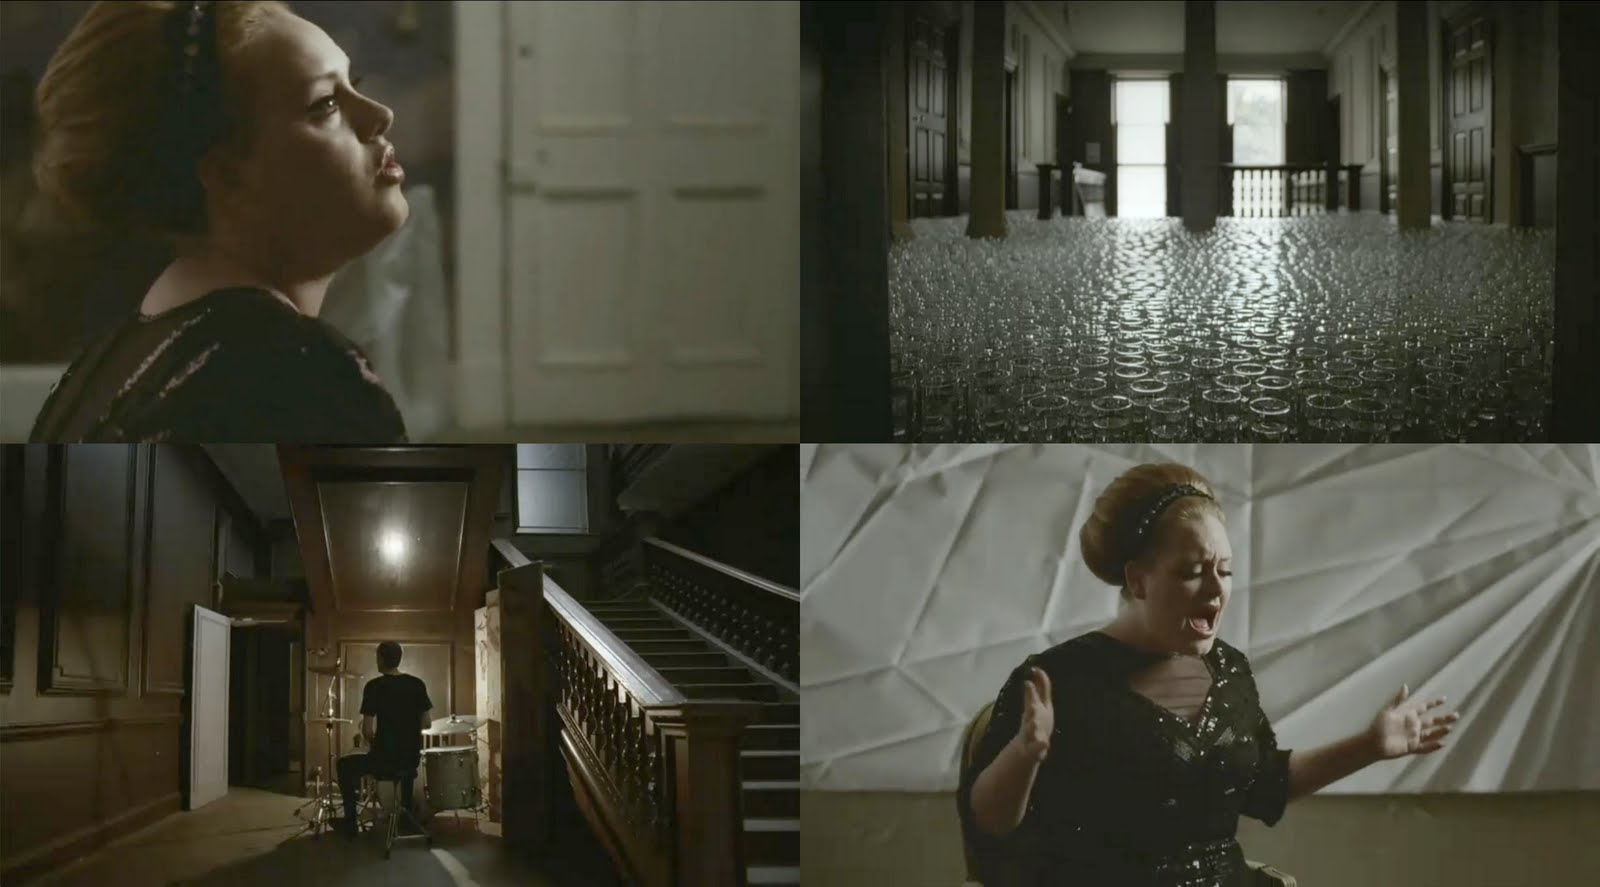 http://1.bp.blogspot.com/-gOb2vcDjOIc/TcgPIbmYS6I/AAAAAAAAAFc/1C1PjwLjQhY/s1600/adele-rolling-in-the-deep-music-video.JPG